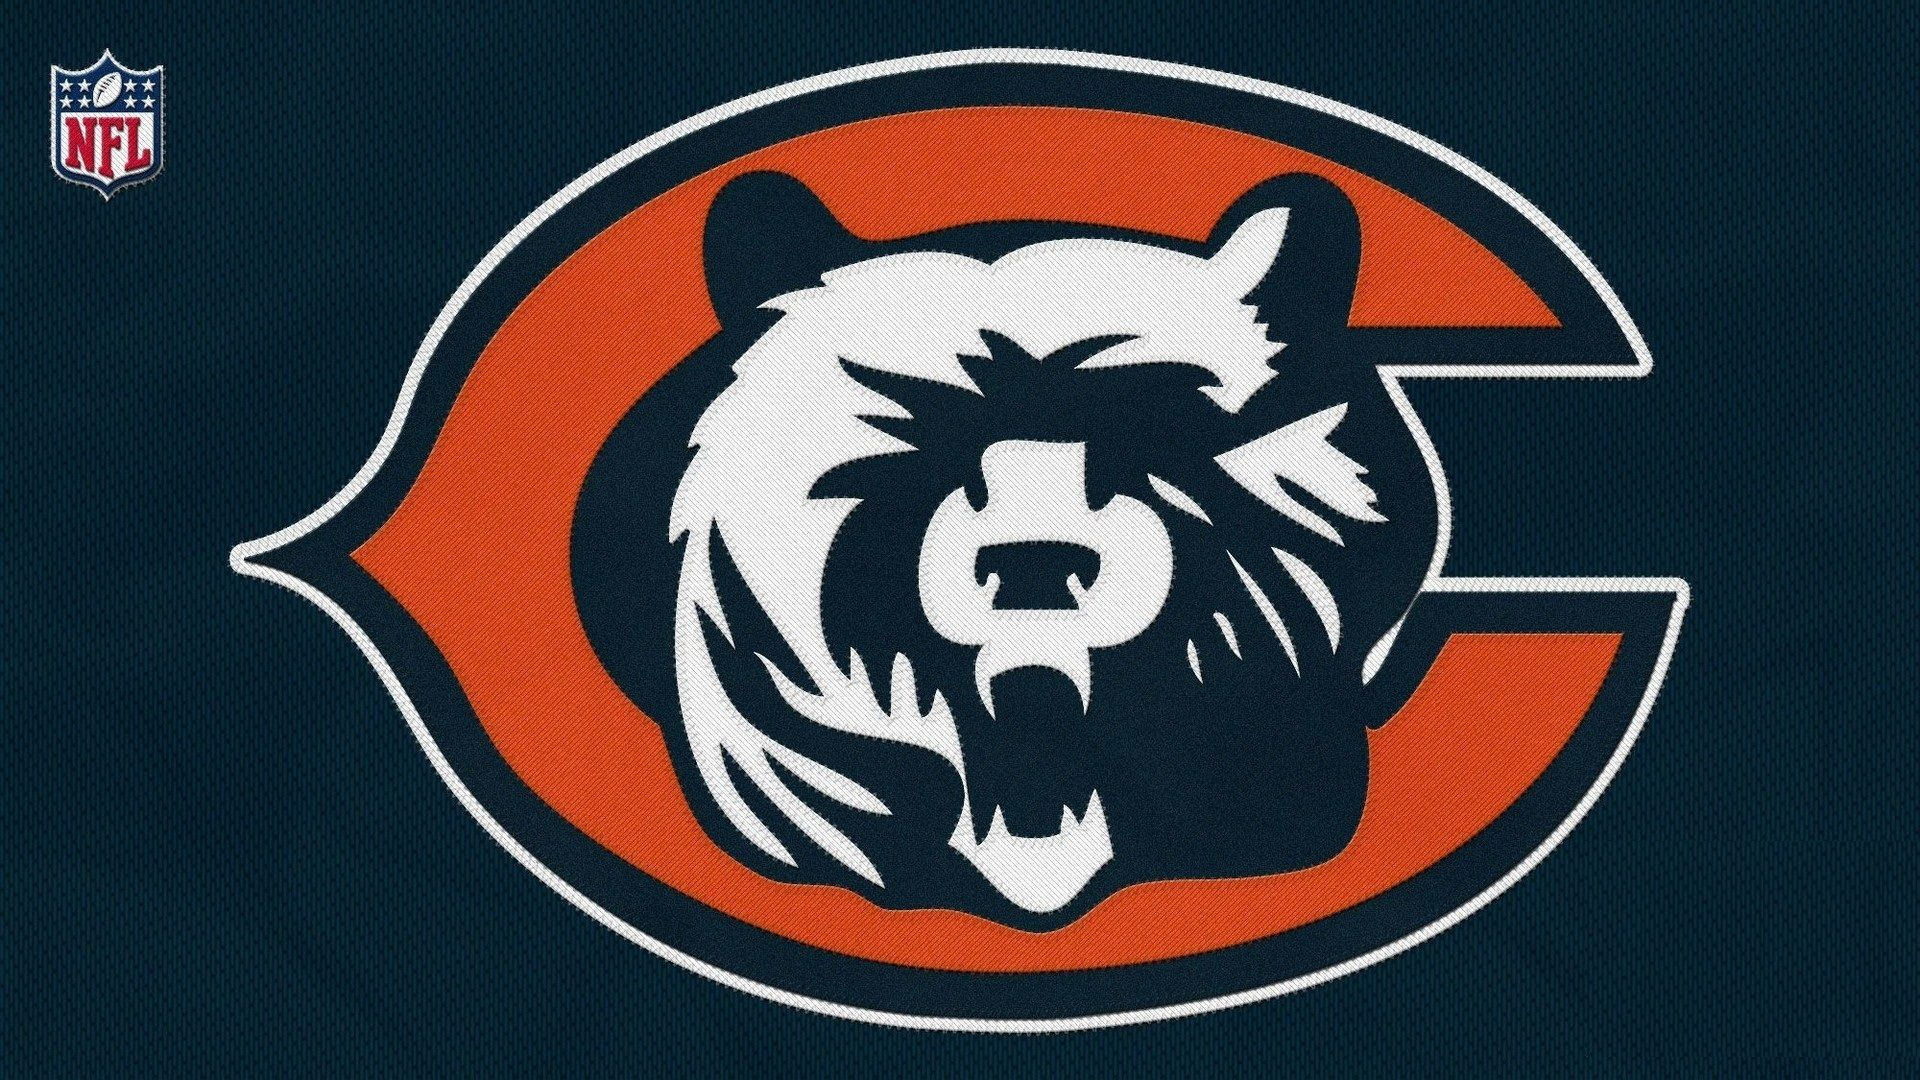 Chicago Bears For Desktop Wallpaper Wallpapers Chicago bears 1920x1080